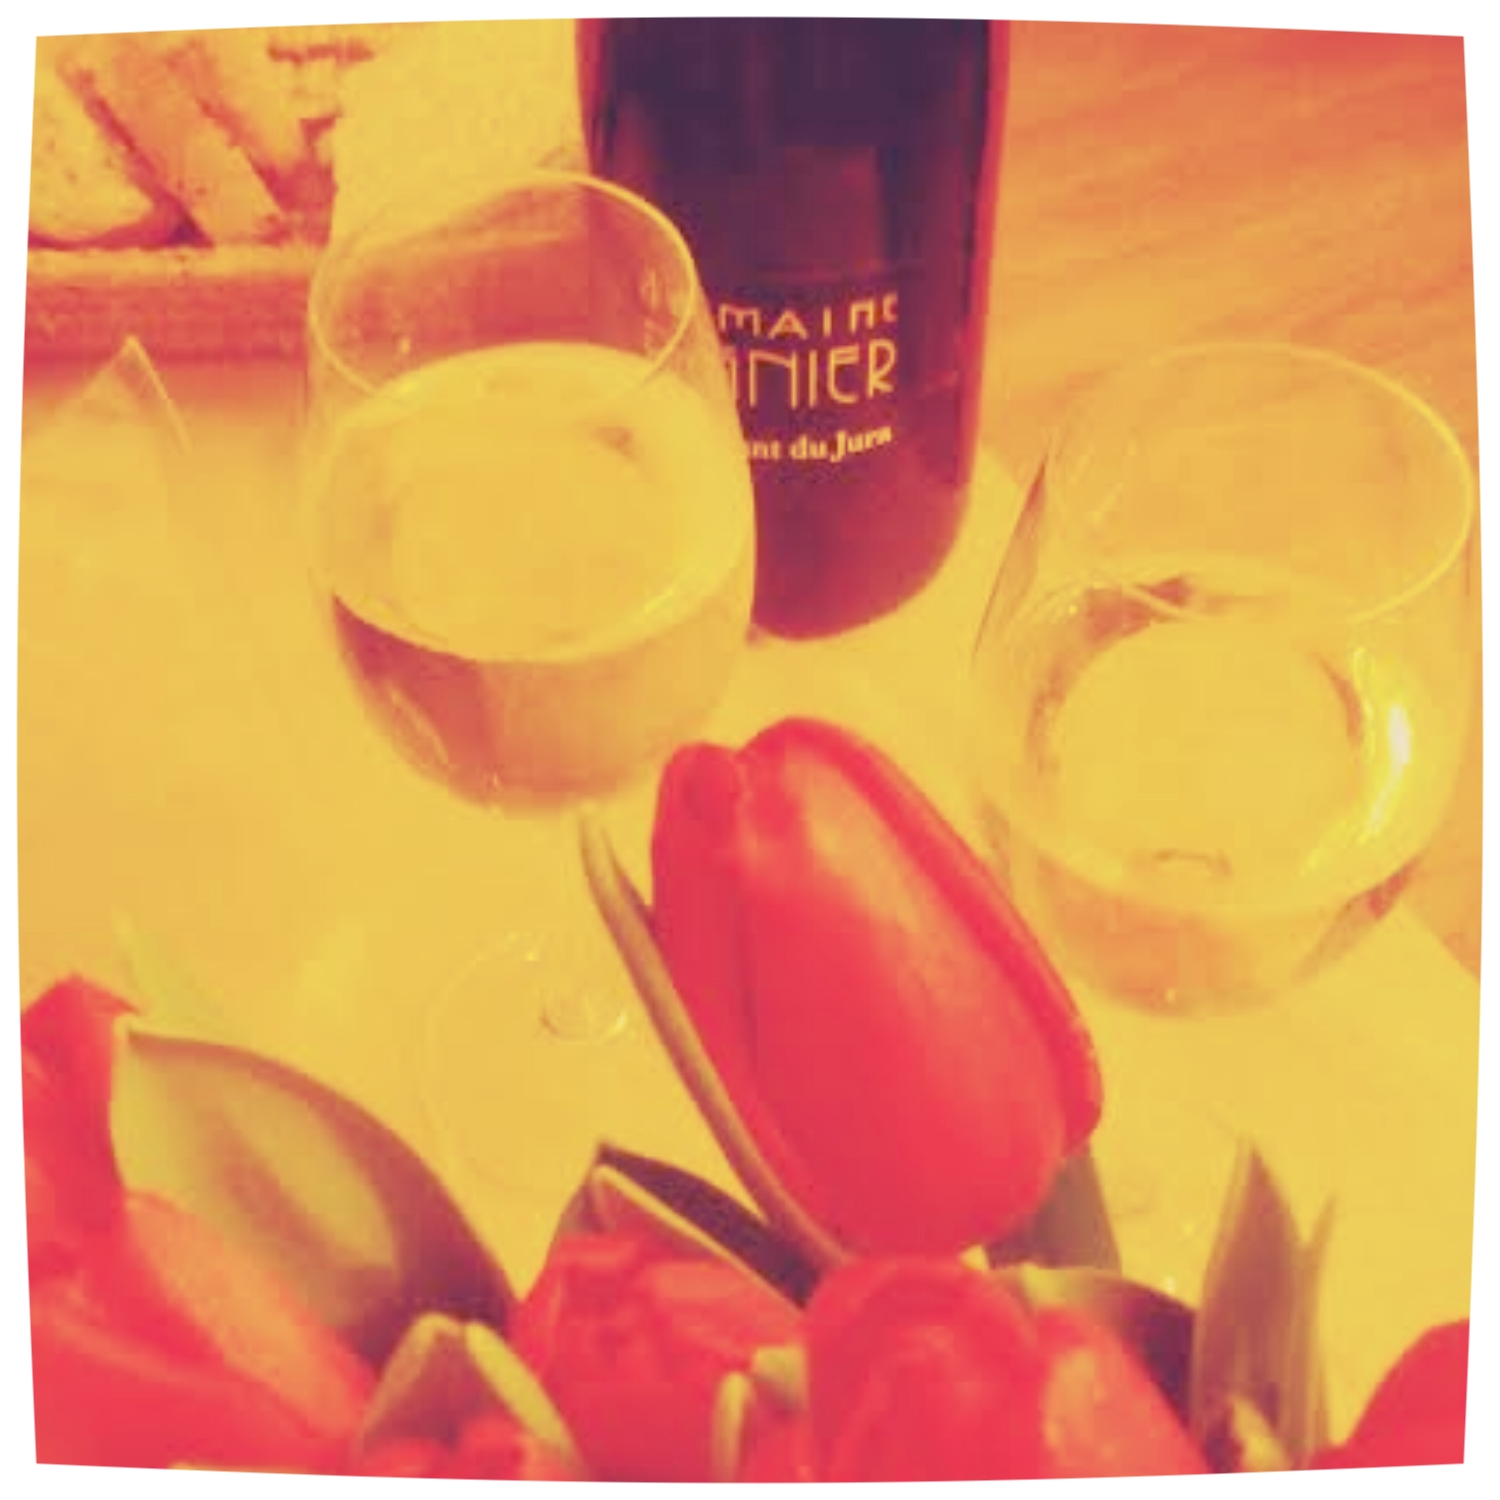 Sharing wine as sharing love… Last lovely night before my first steps on the wine roads in South America